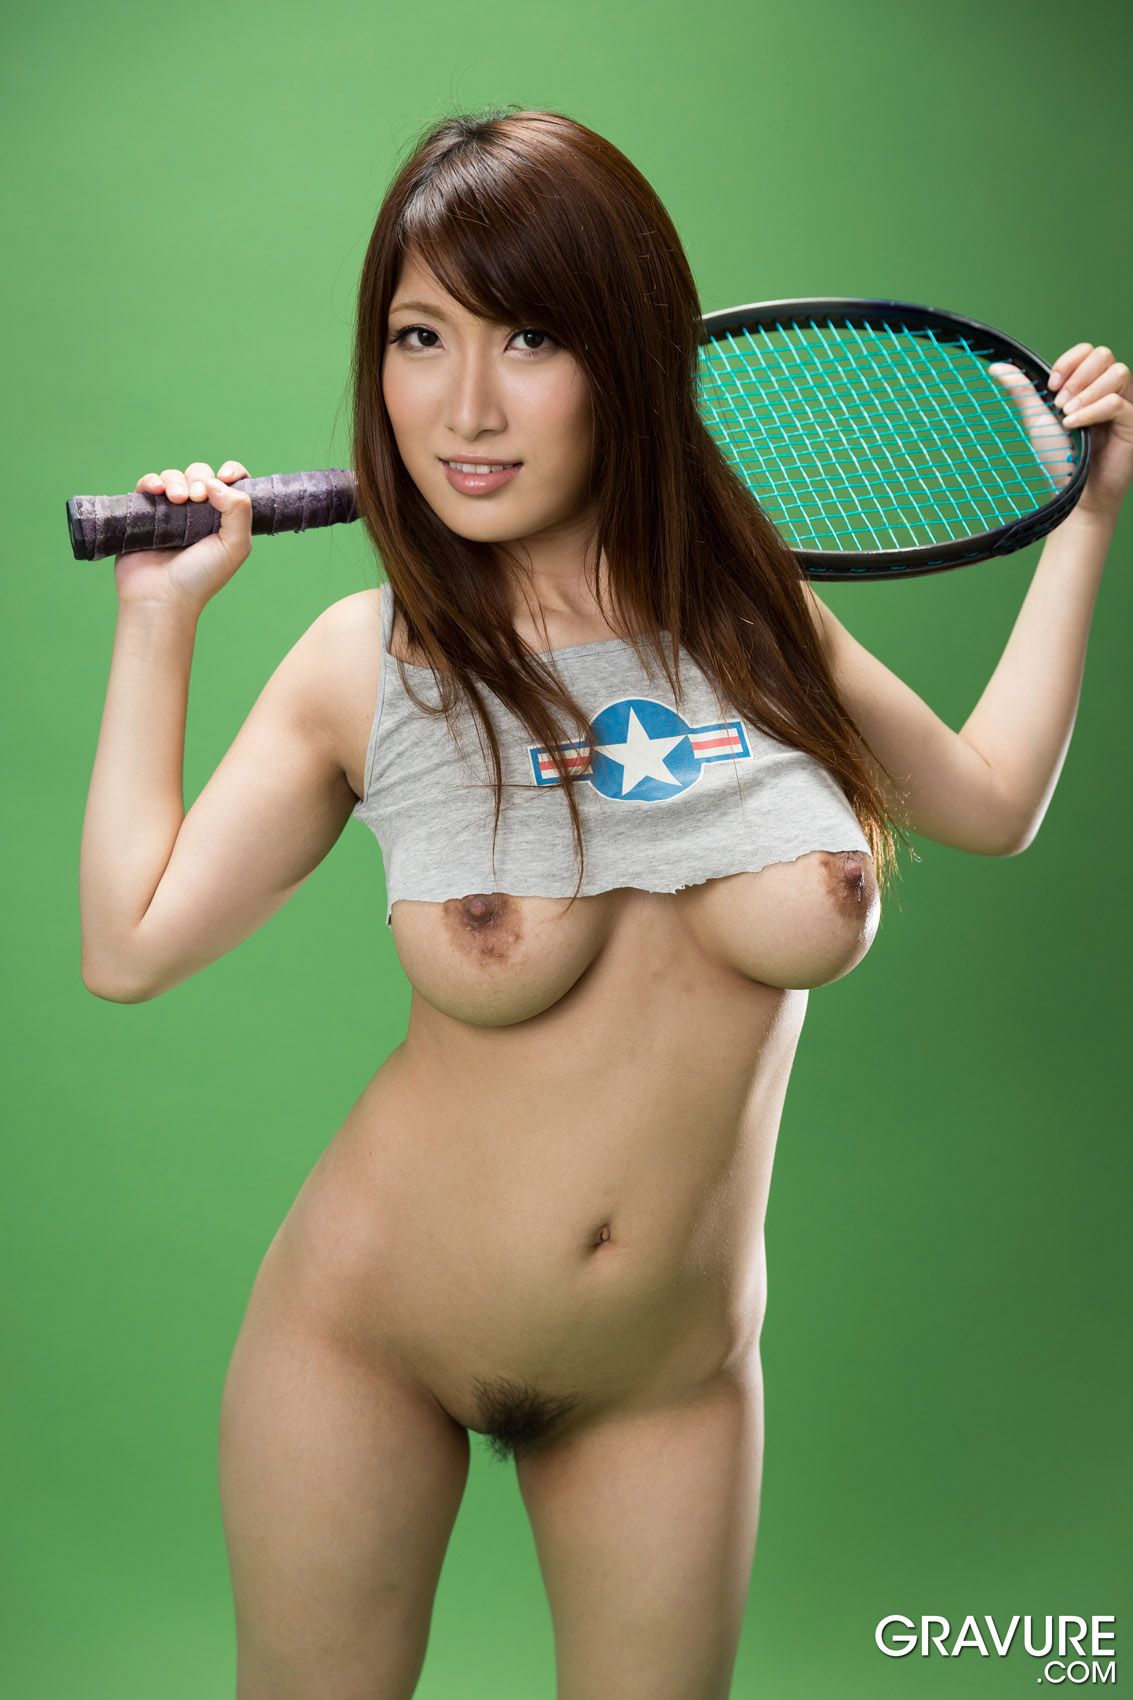 asian database nude tennis